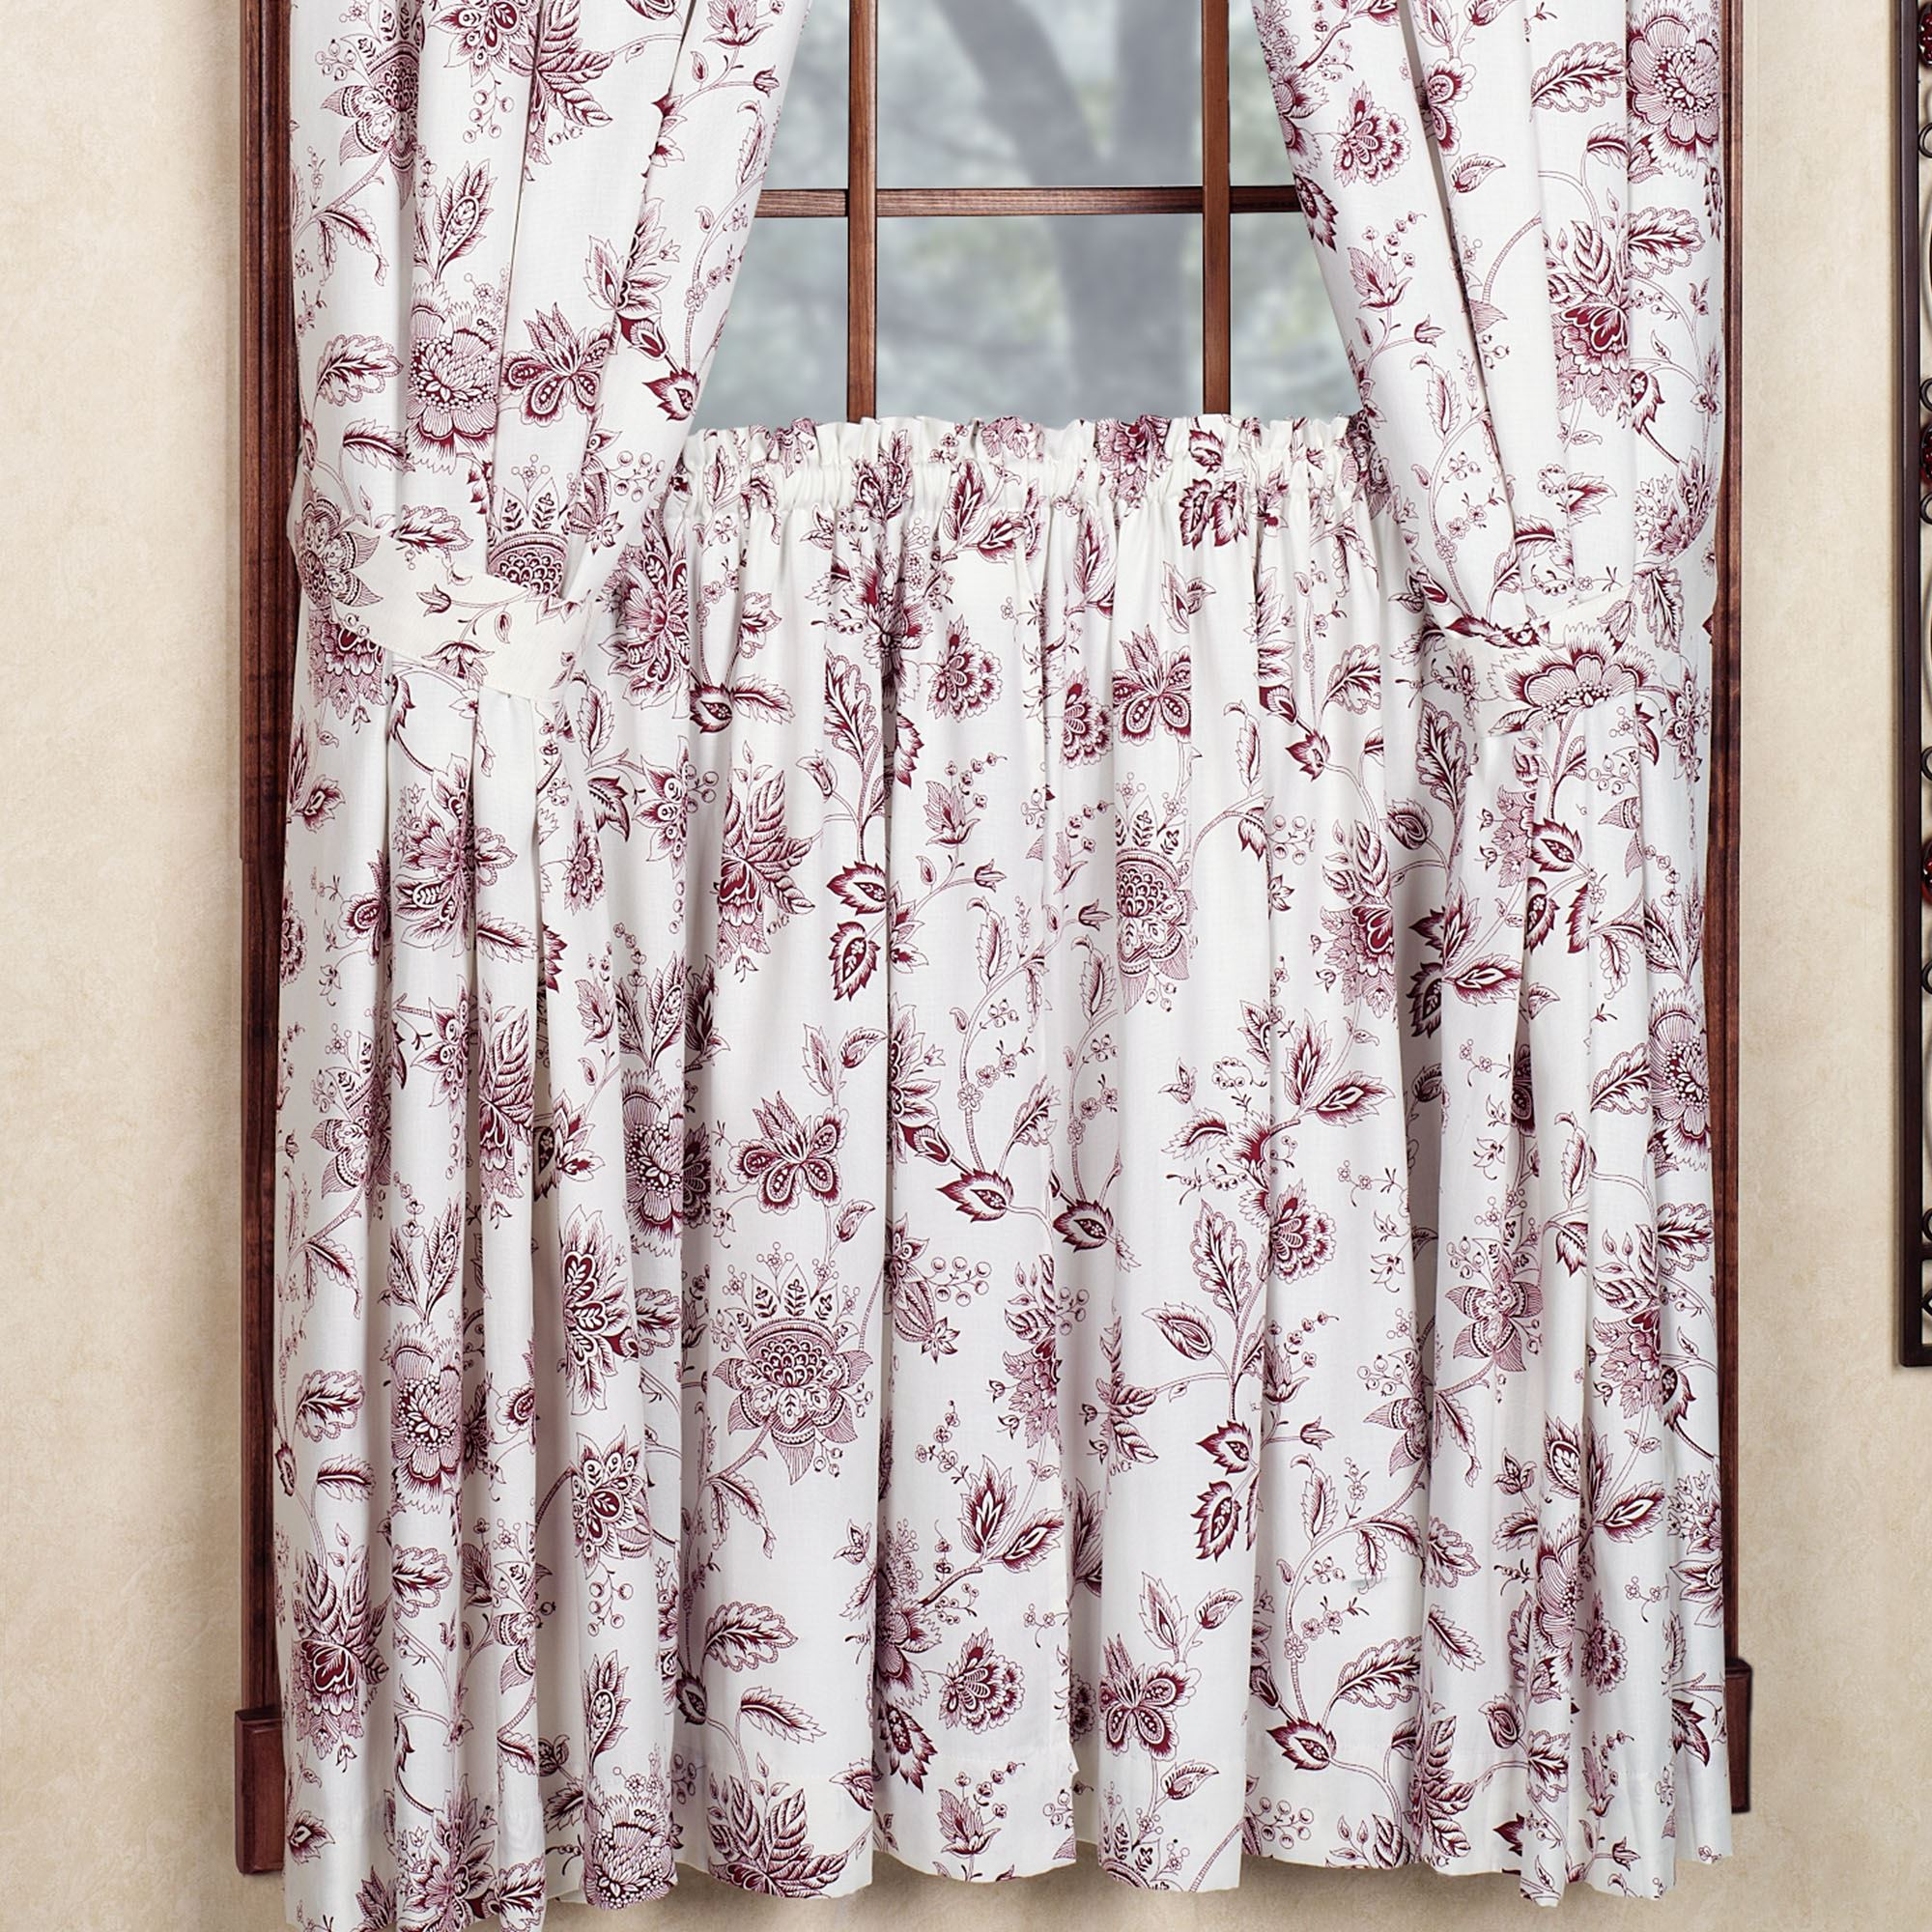 Cheery Winston Short Length Curtain Pair X Winston Jacobean Floral Short Length Window Treatment Standard Curtain Measurements Standard Kitchen Curtain Lengths houzz 01 Standard Curtain Lengths